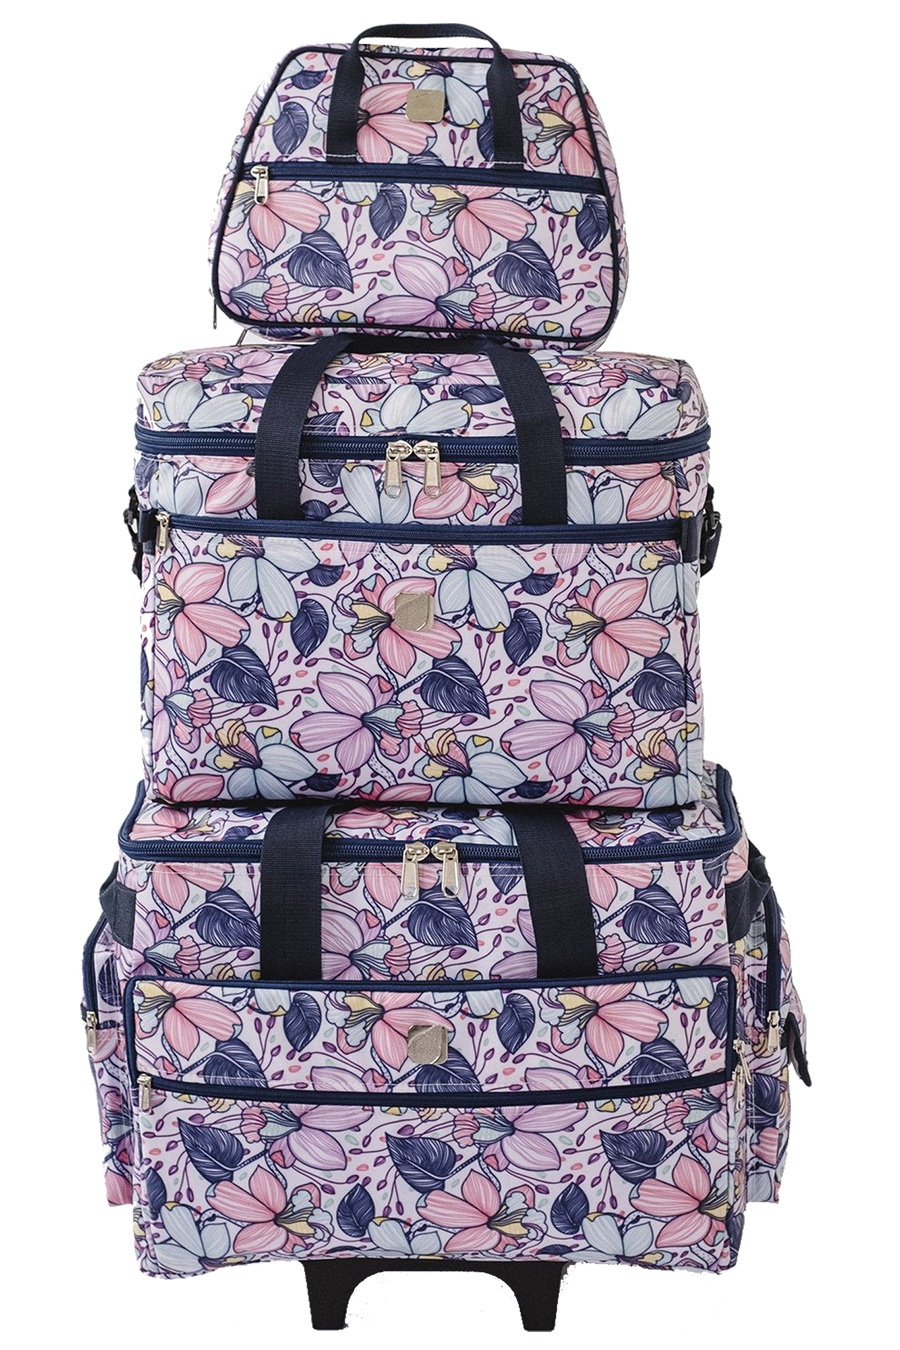 "Bluefig Quilter Essential Combo: 19"" Wheeled Bag, Project Bag and Satchel - Maisy"